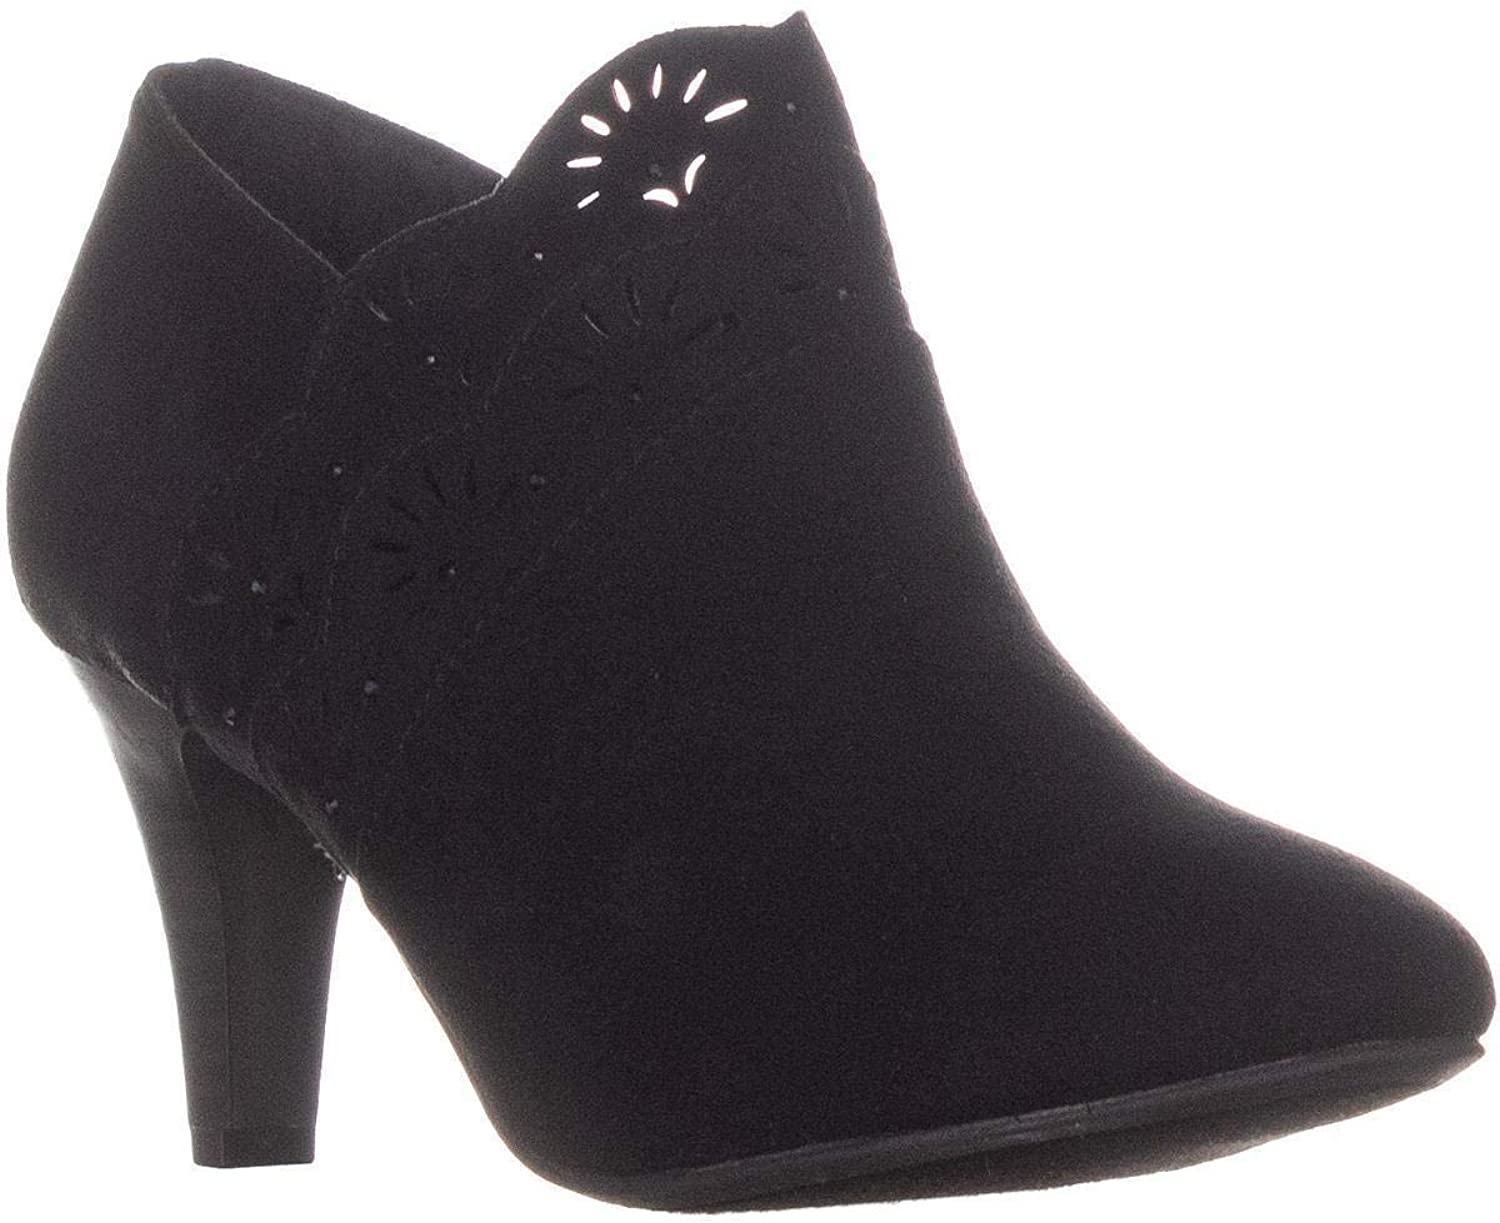 KS35 Marana Front Perforated Ankle Boots, Black